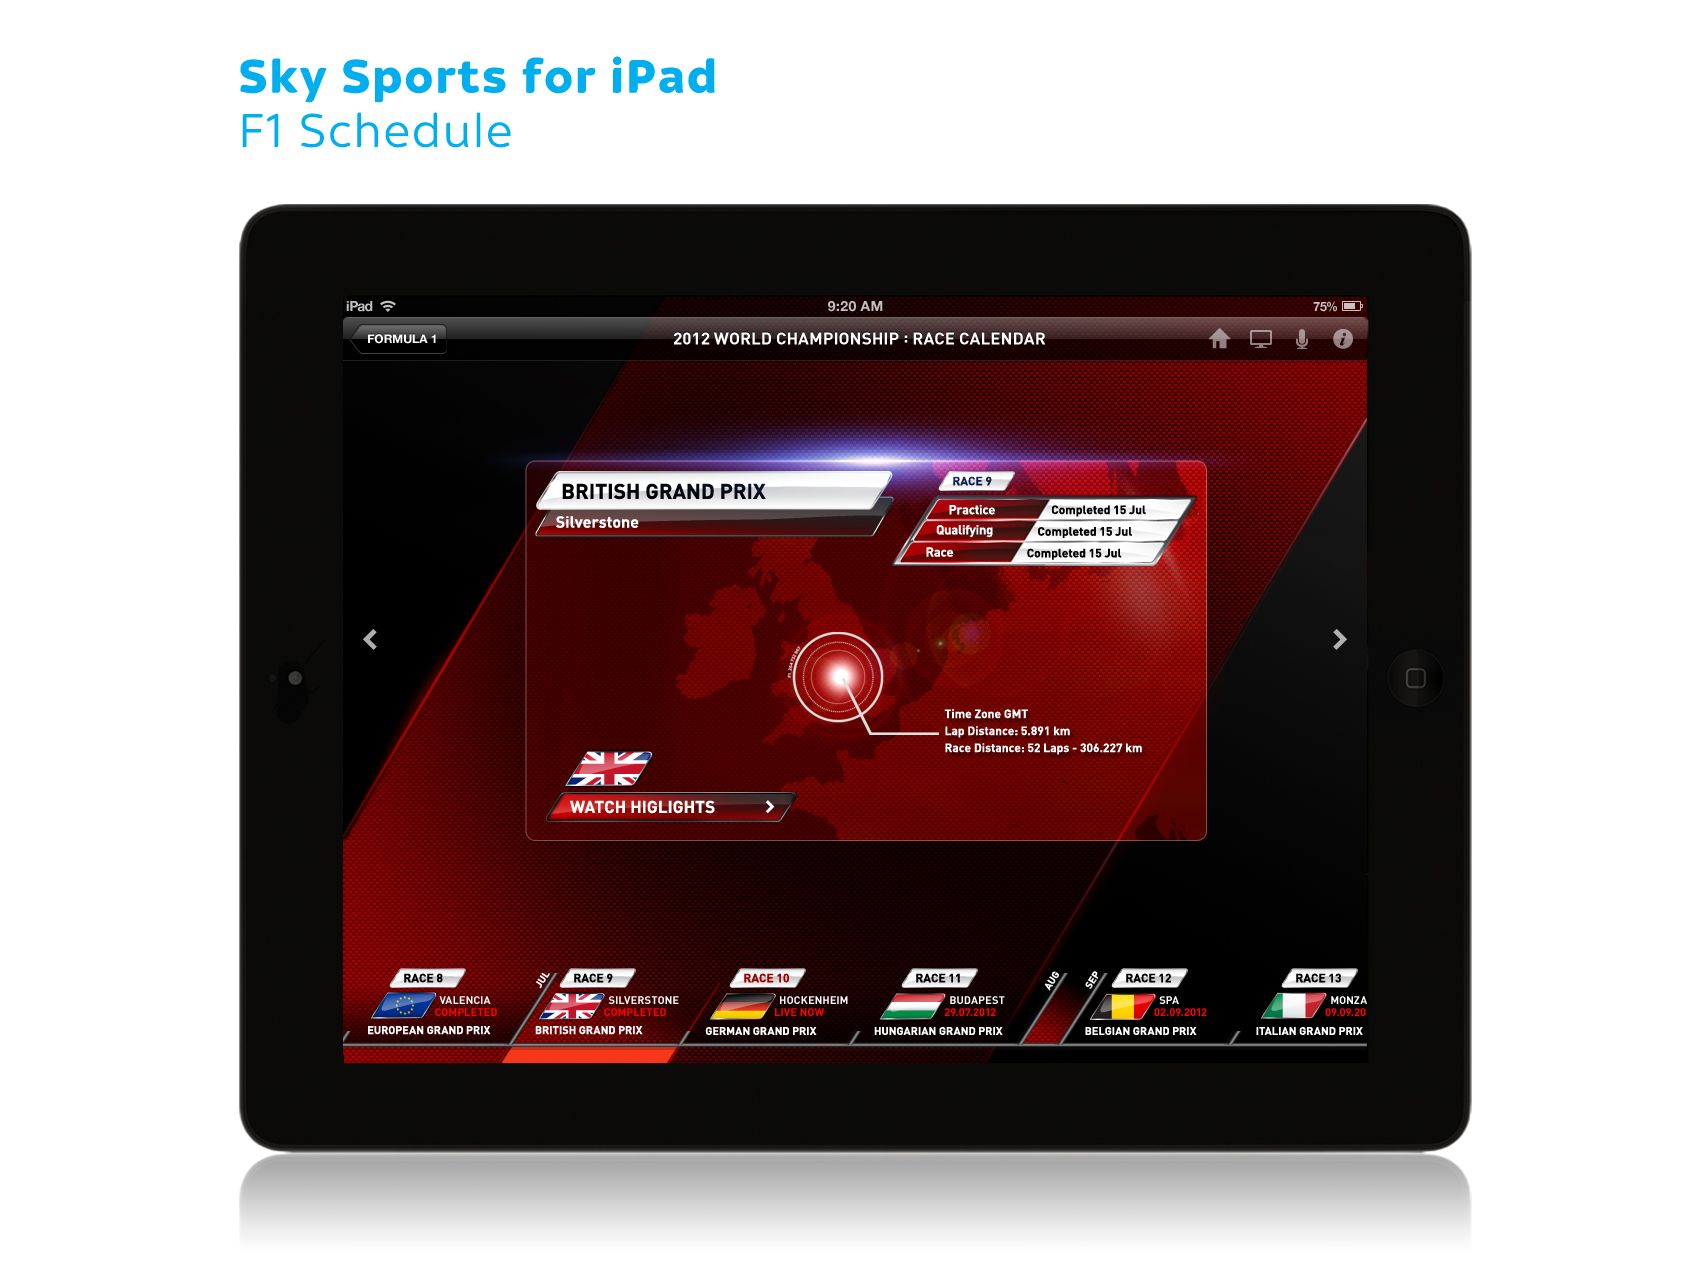 Sky Sports for iPad F1 06 Race calendar, F1 schedule